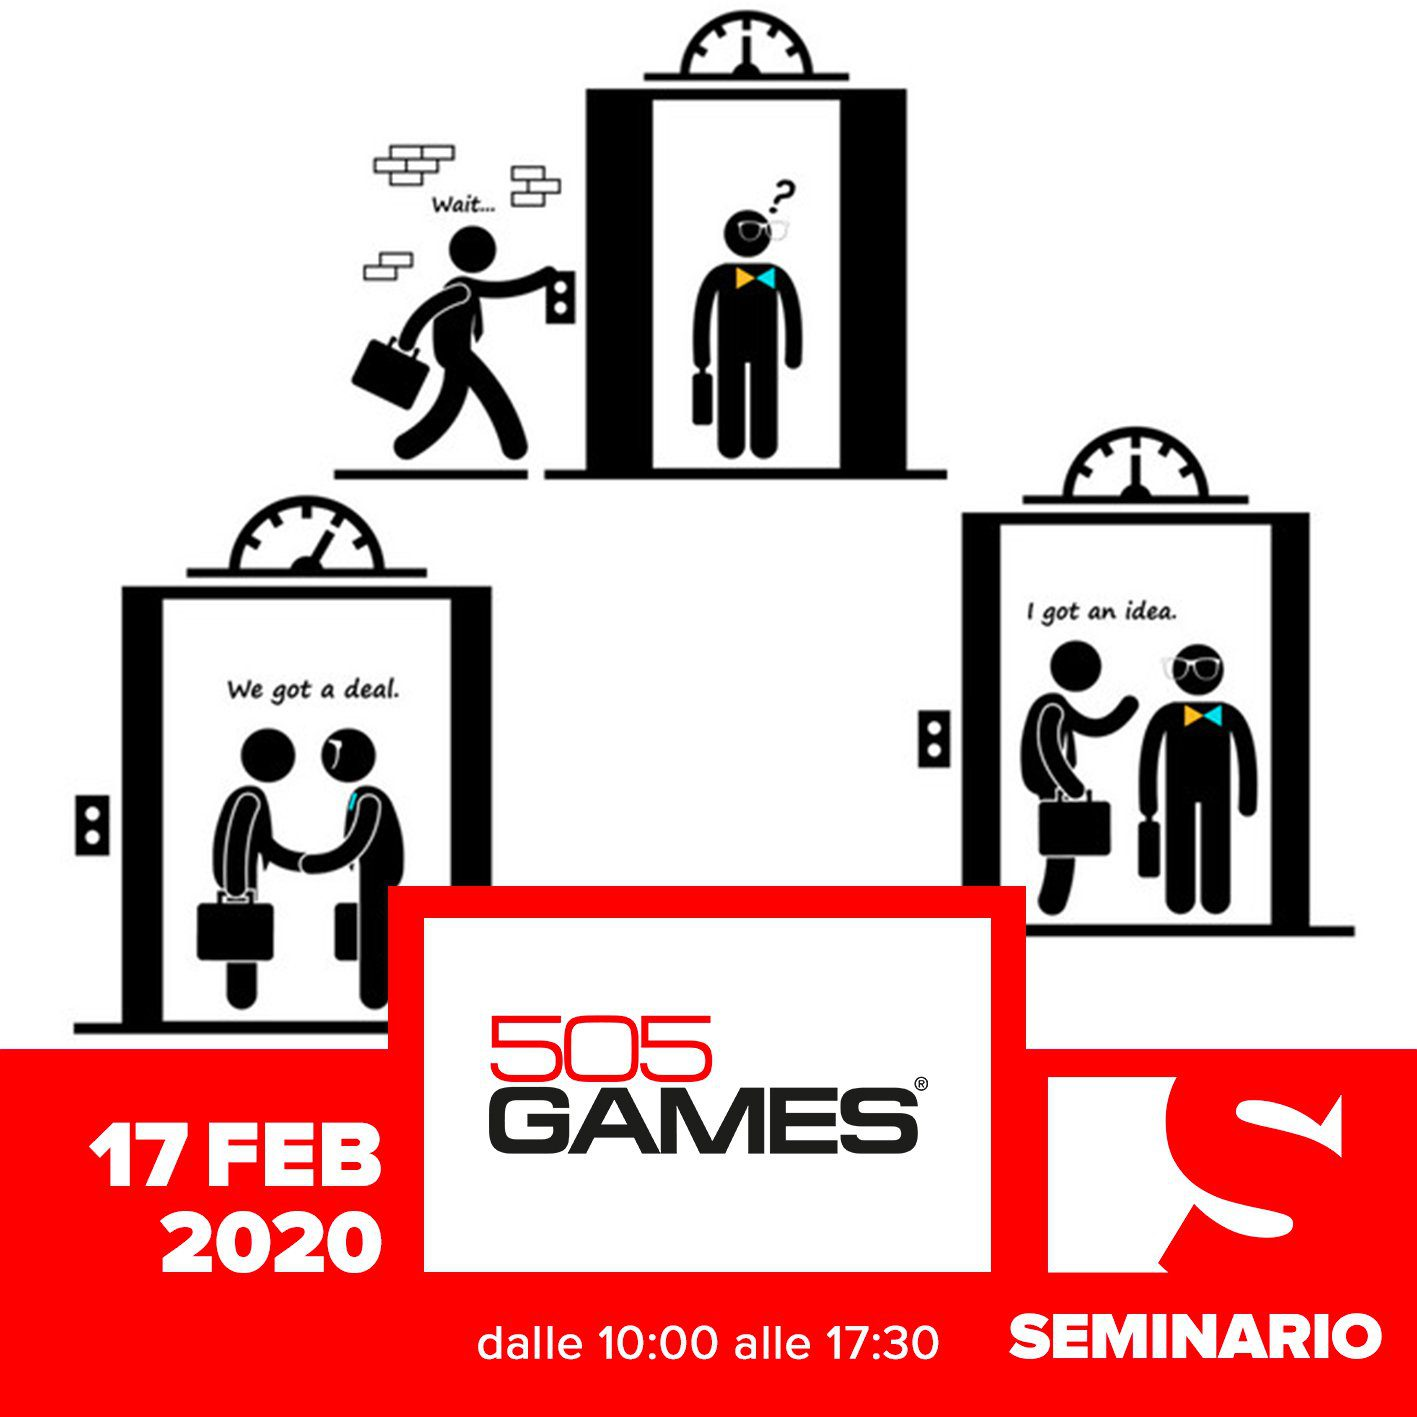 SEMINARIO – GIOVANNA VILLANI How to pitch your game